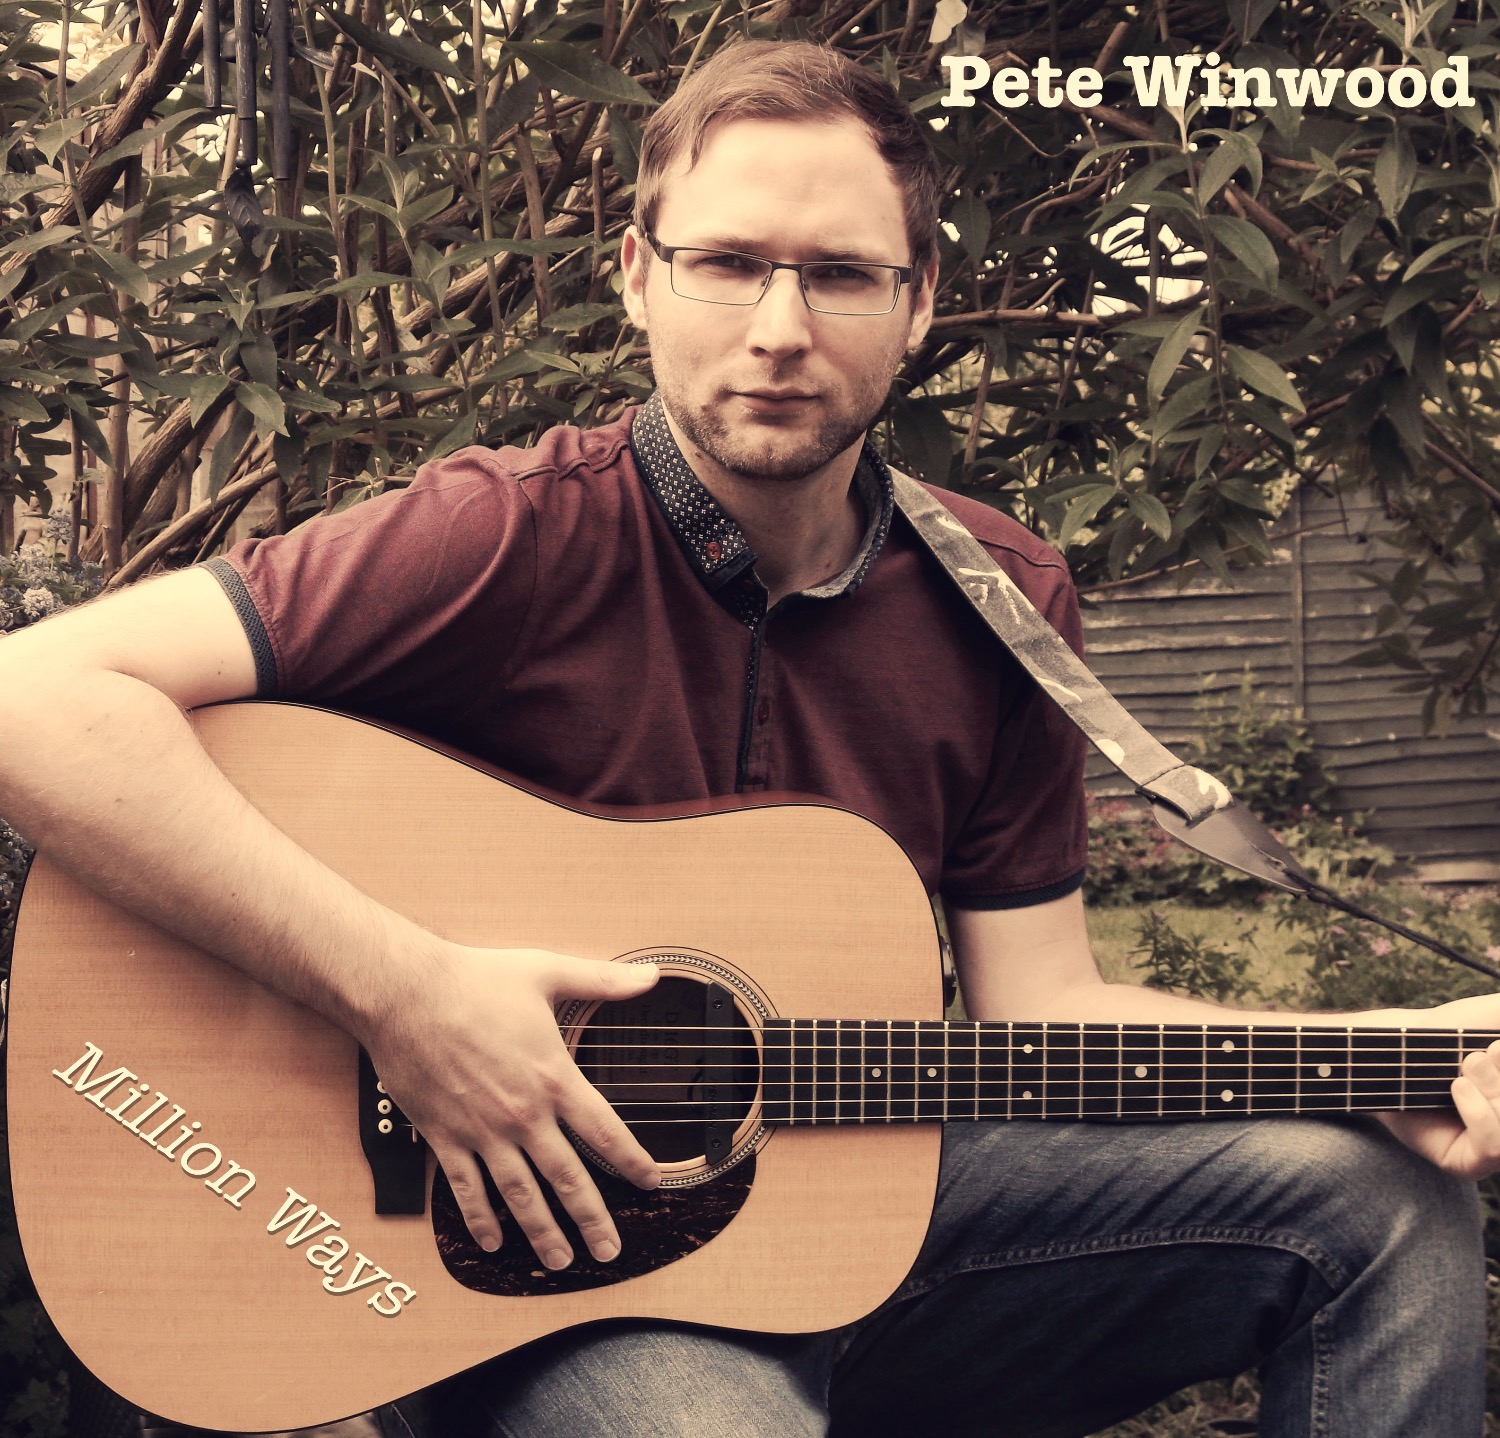 Pete Winwood